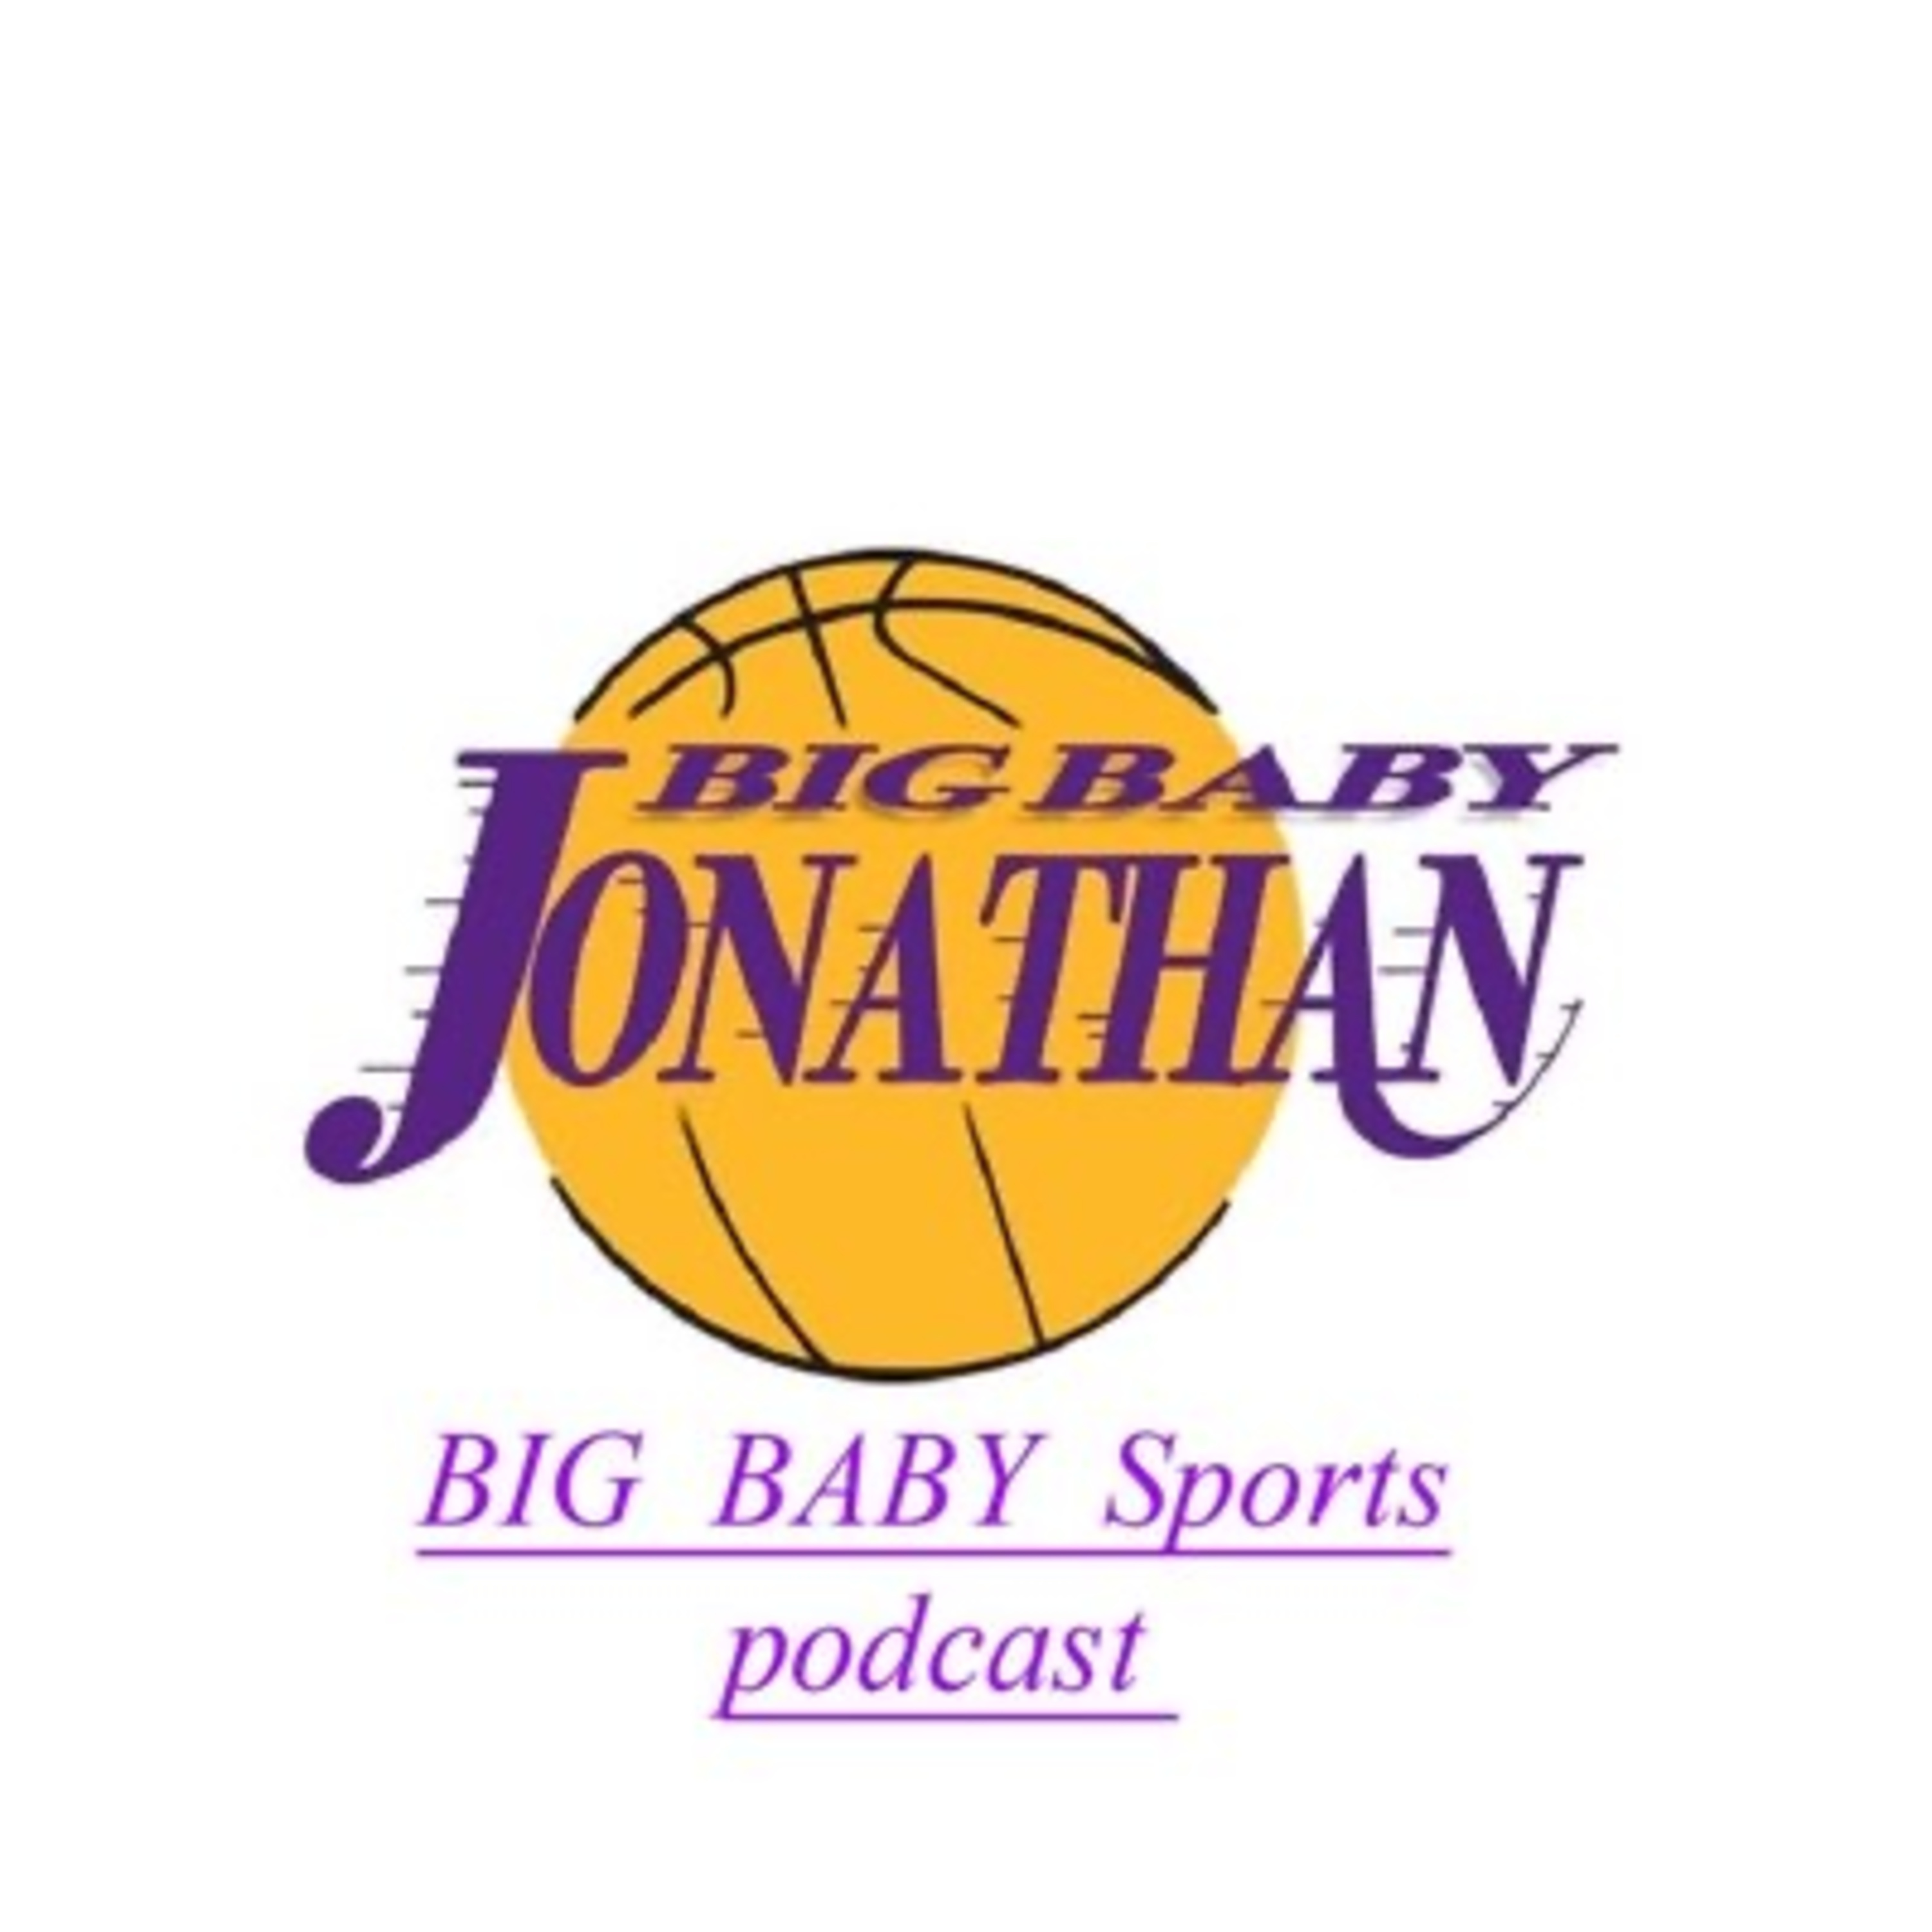 Big Baby Sports podcast Lakers lose in disappointing fashion my recap an analysis